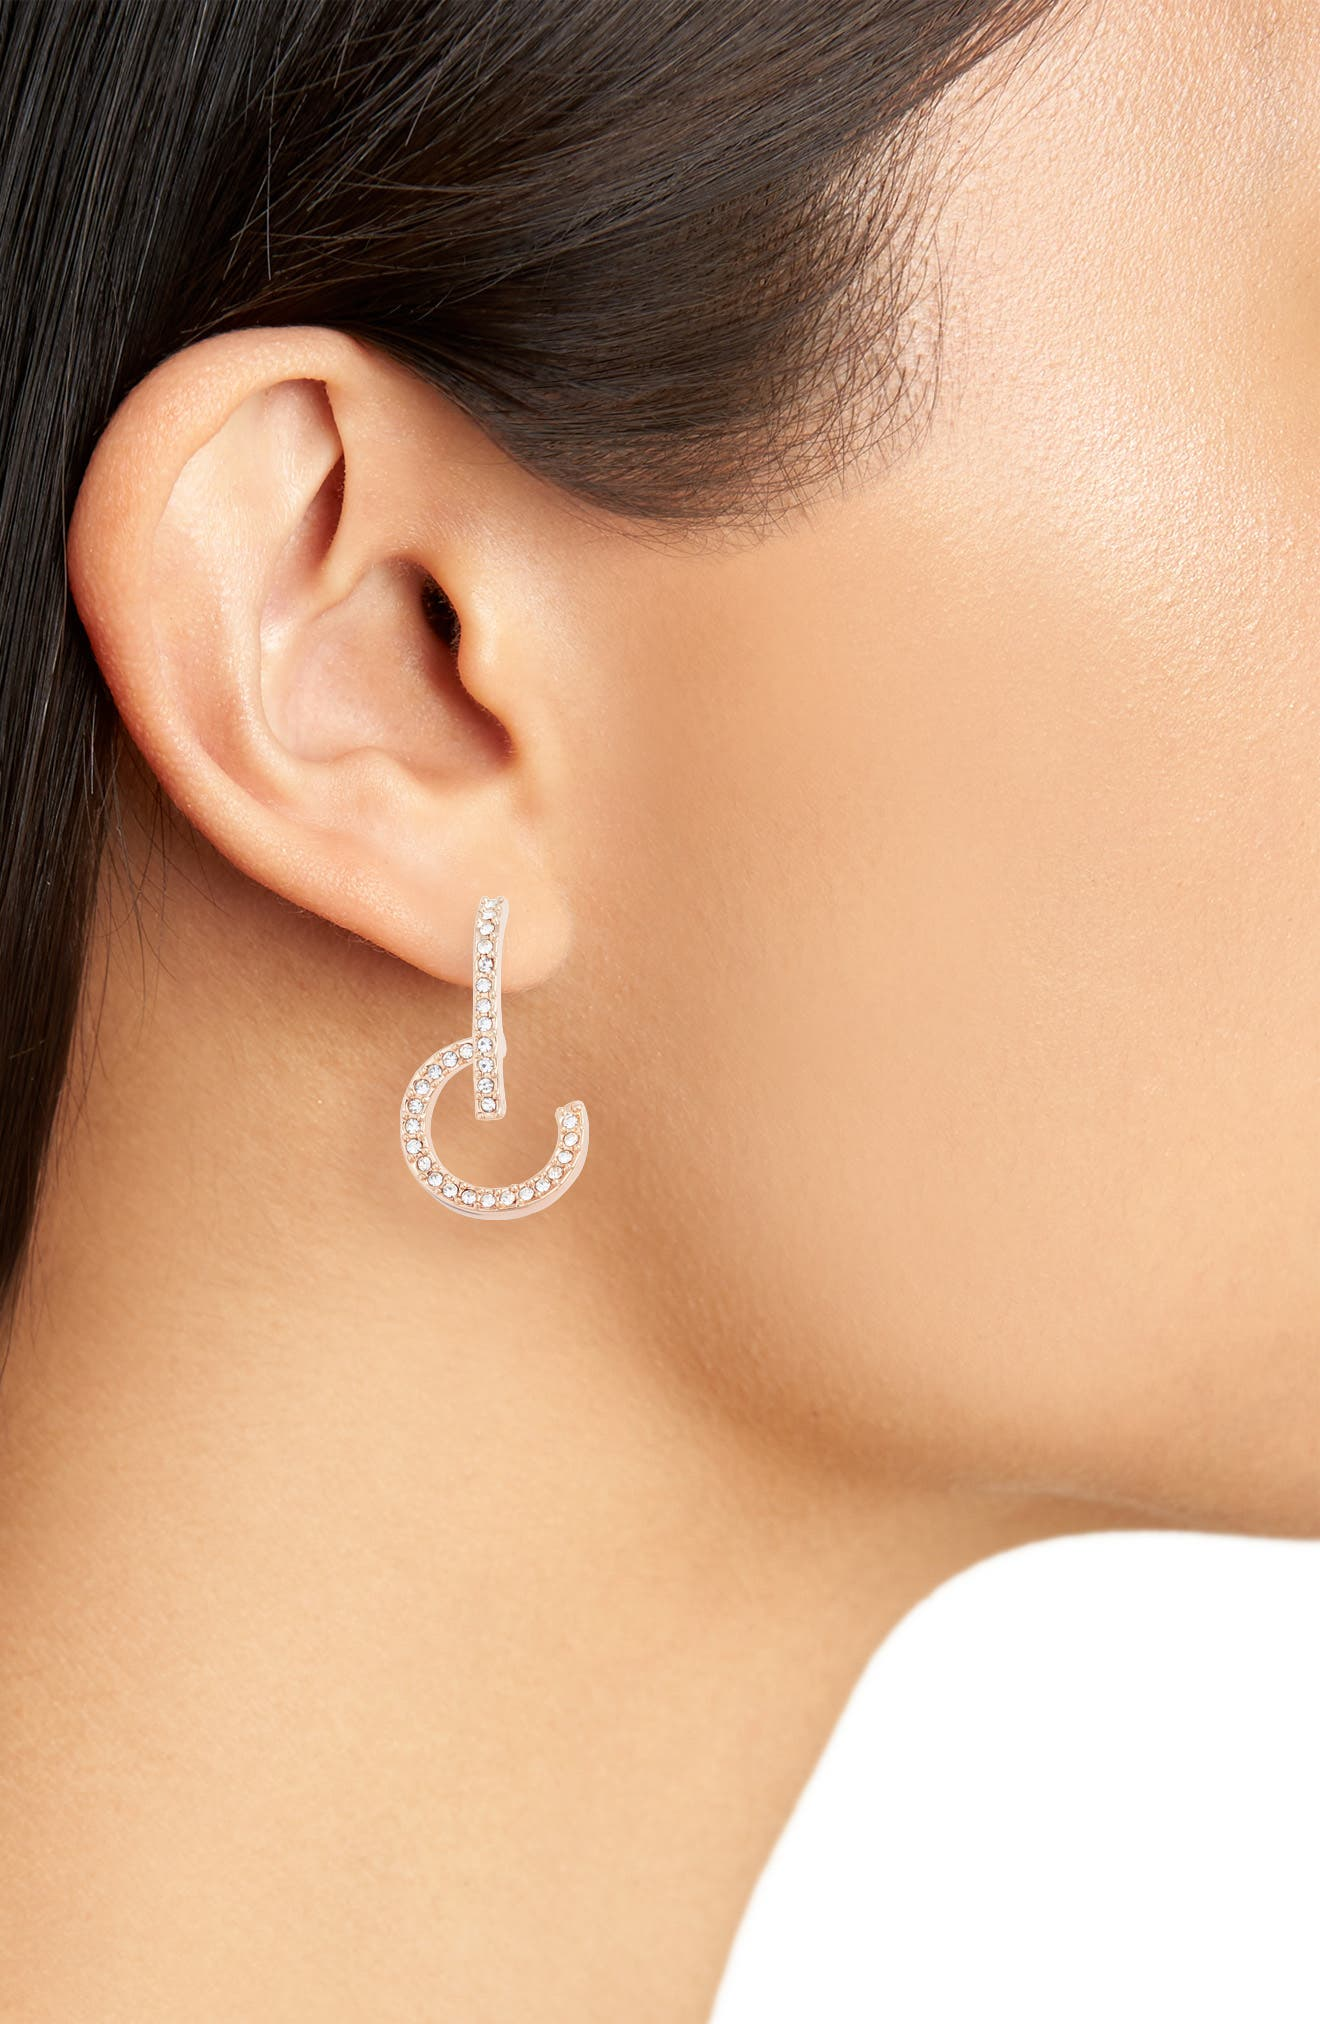 Lobe and Hoop Earrings,                             Alternate thumbnail 2, color,                             ROSE GOLD